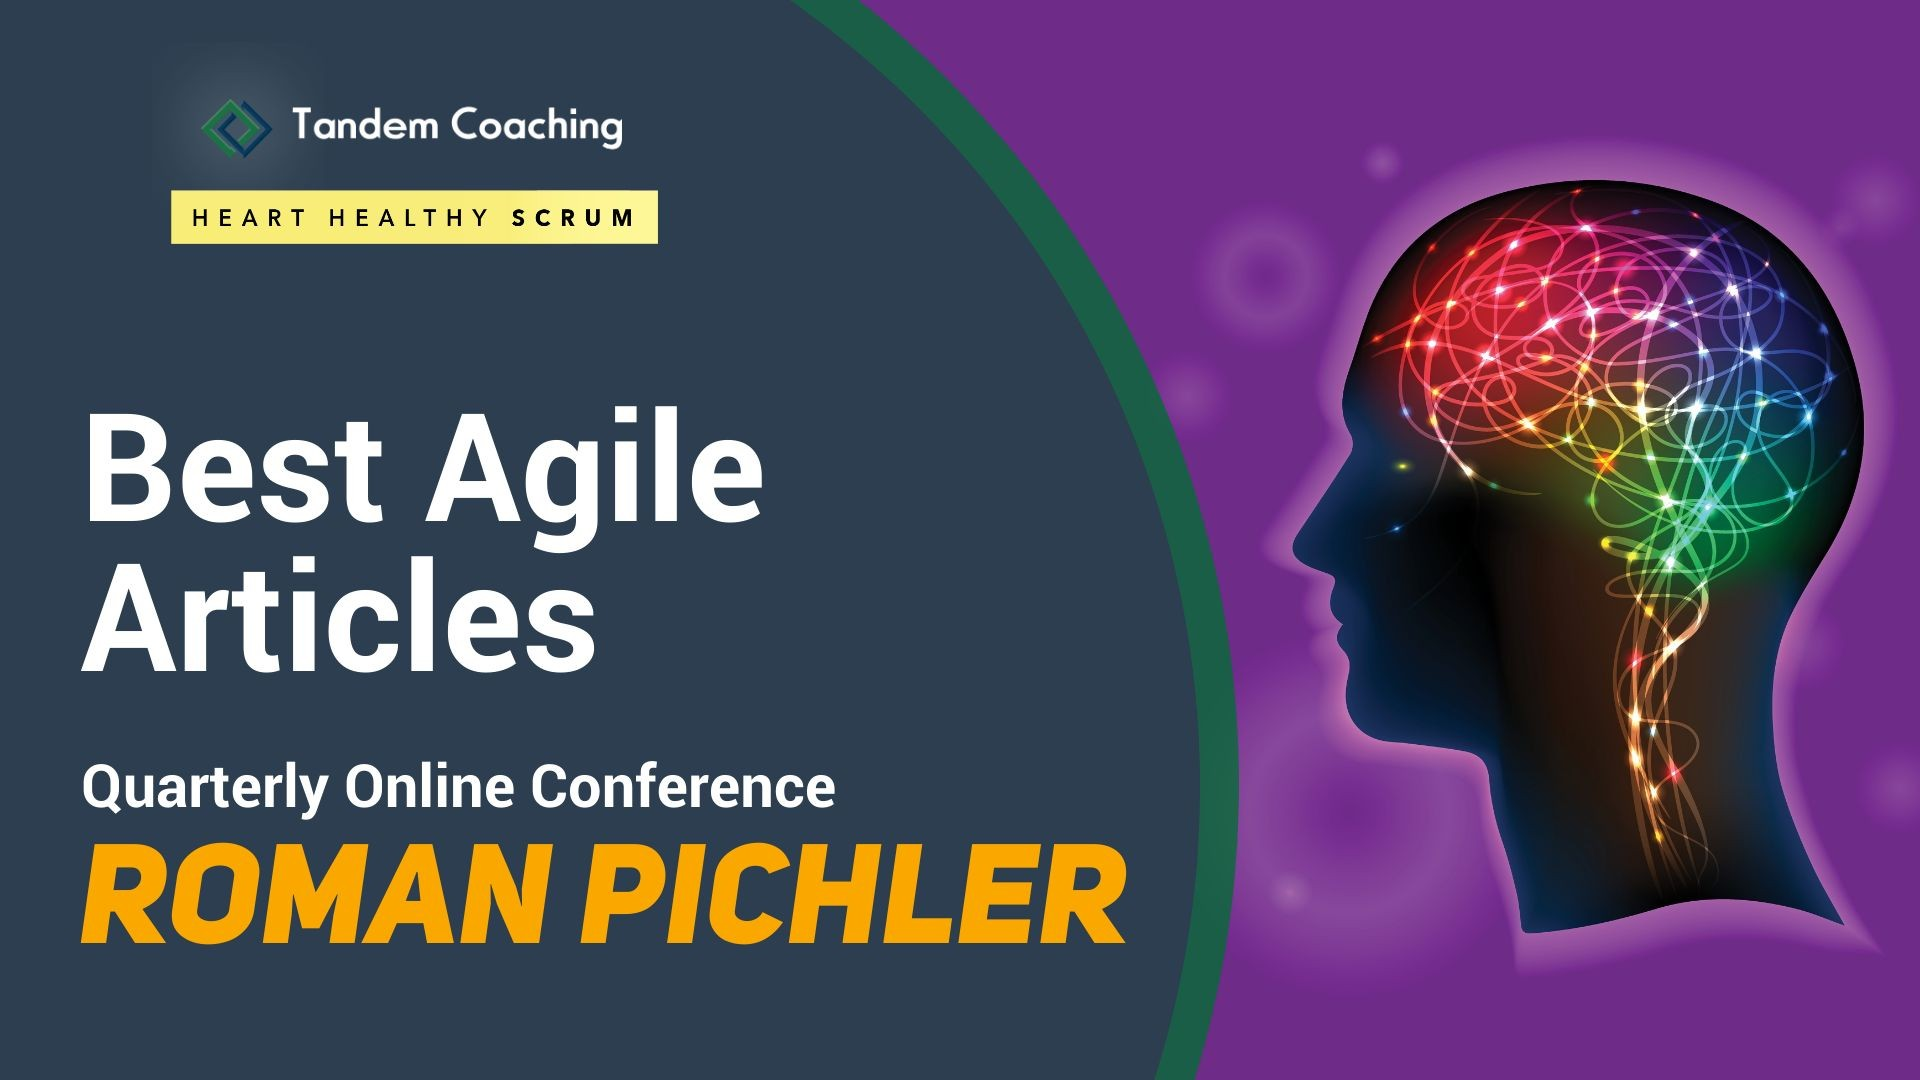 Best Agile Articles Online Conference - Roman Pichler